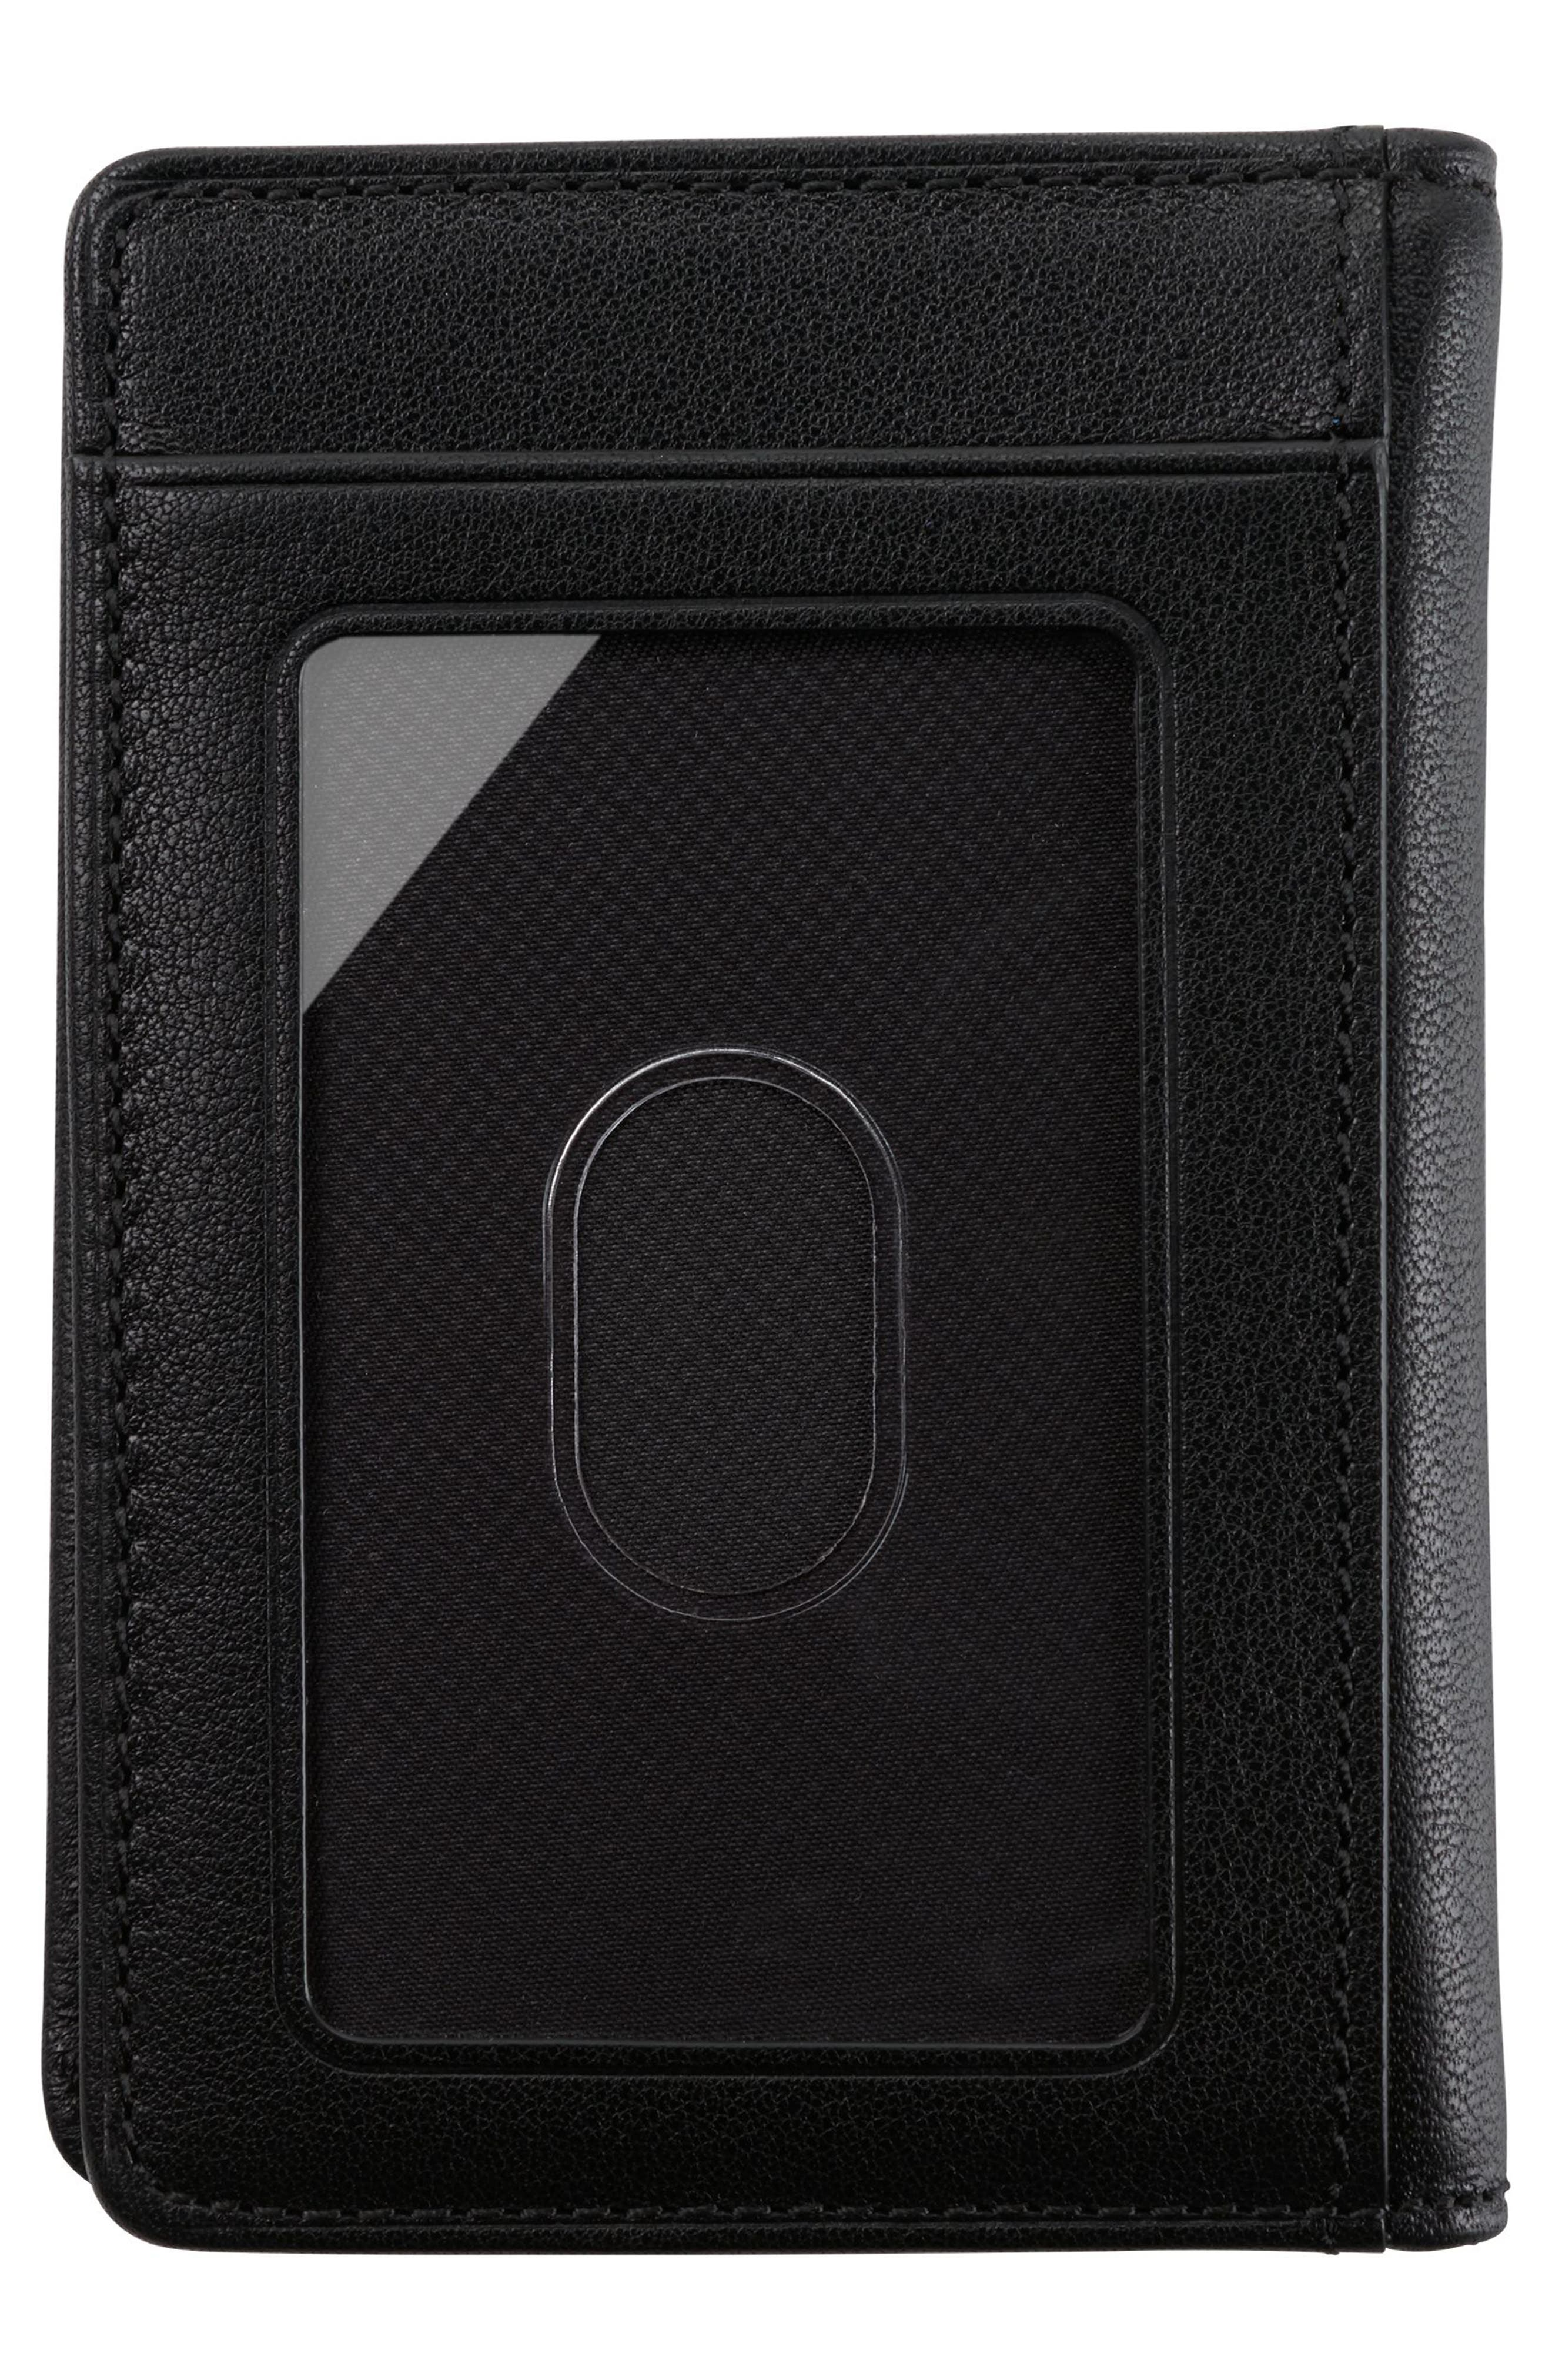 TUMI,                             Leather Card Case,                             Alternate thumbnail 3, color,                             011